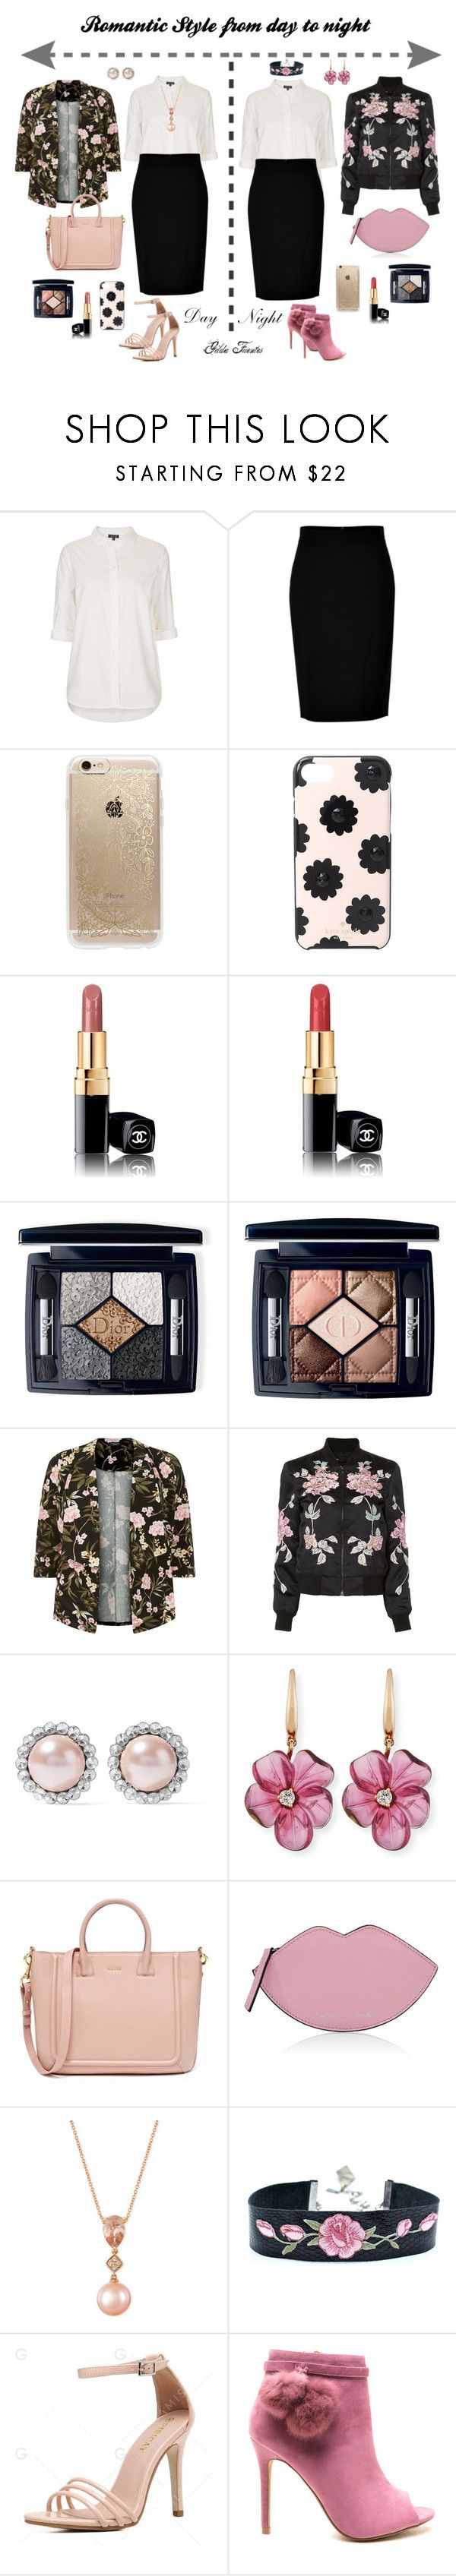 """Romantic Style from day to night"" by gildafuentesb on Polyvore featuring Topshop, DKNY, Rifle Paper Co, Kate Spade, Chanel, Christian Dior, 3x1, Miu Miu, Rina Limor y Kendall + Kylie"